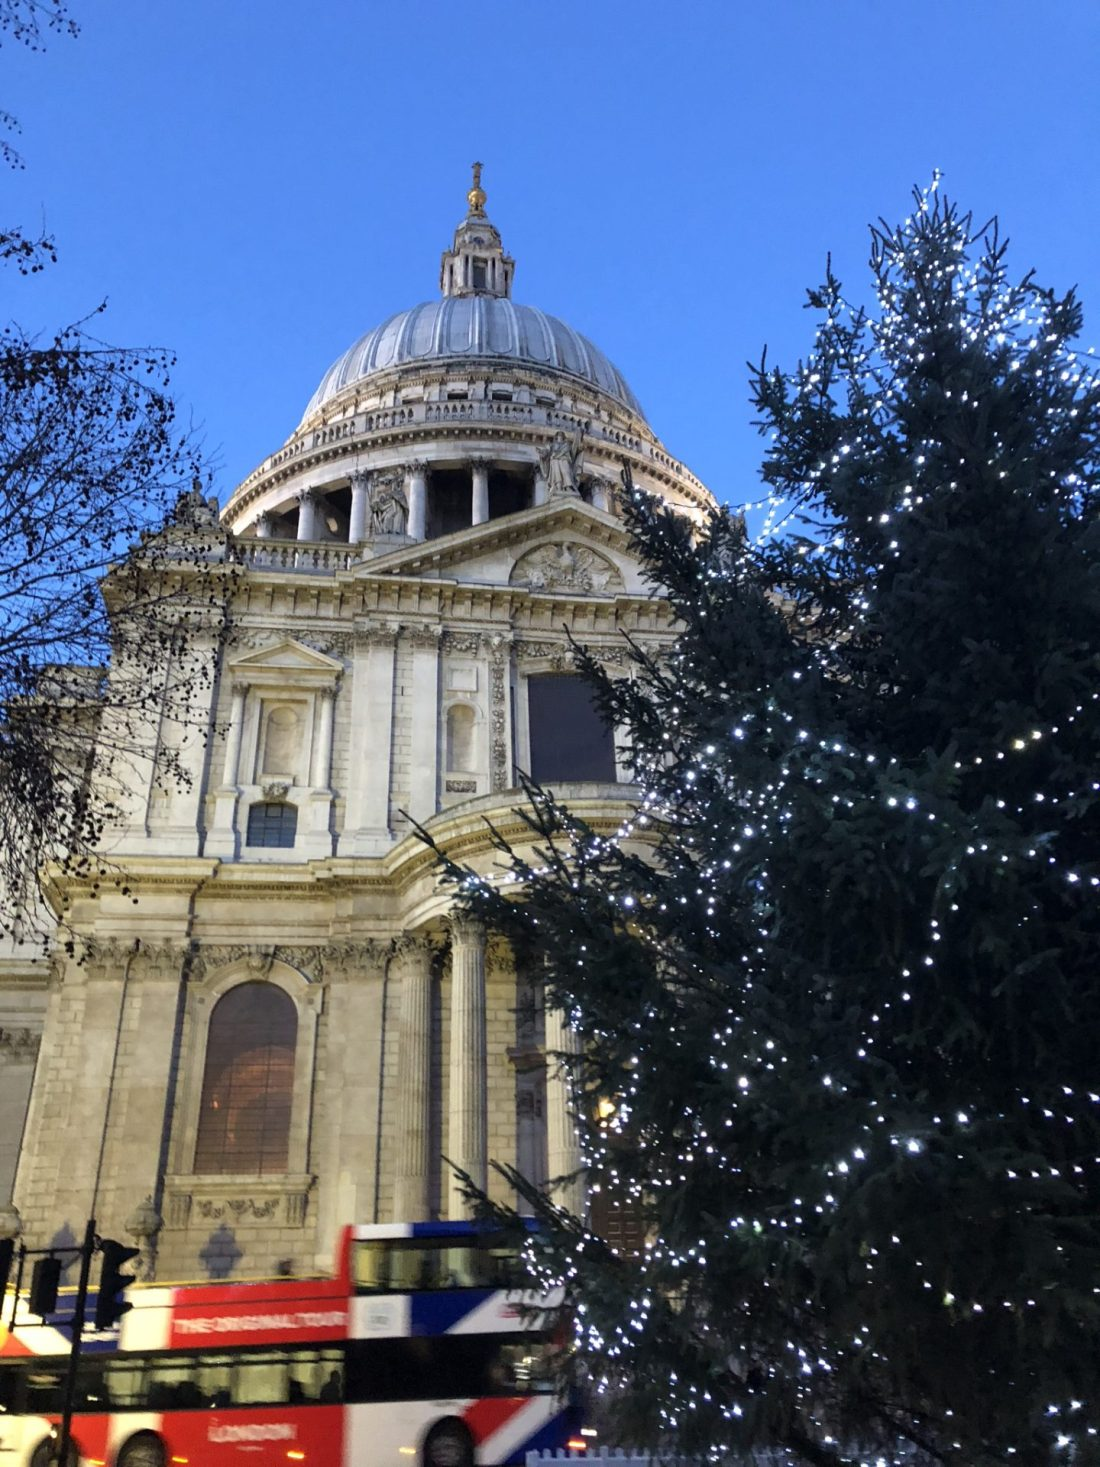 St Pauls Cathedral at Christmas, London